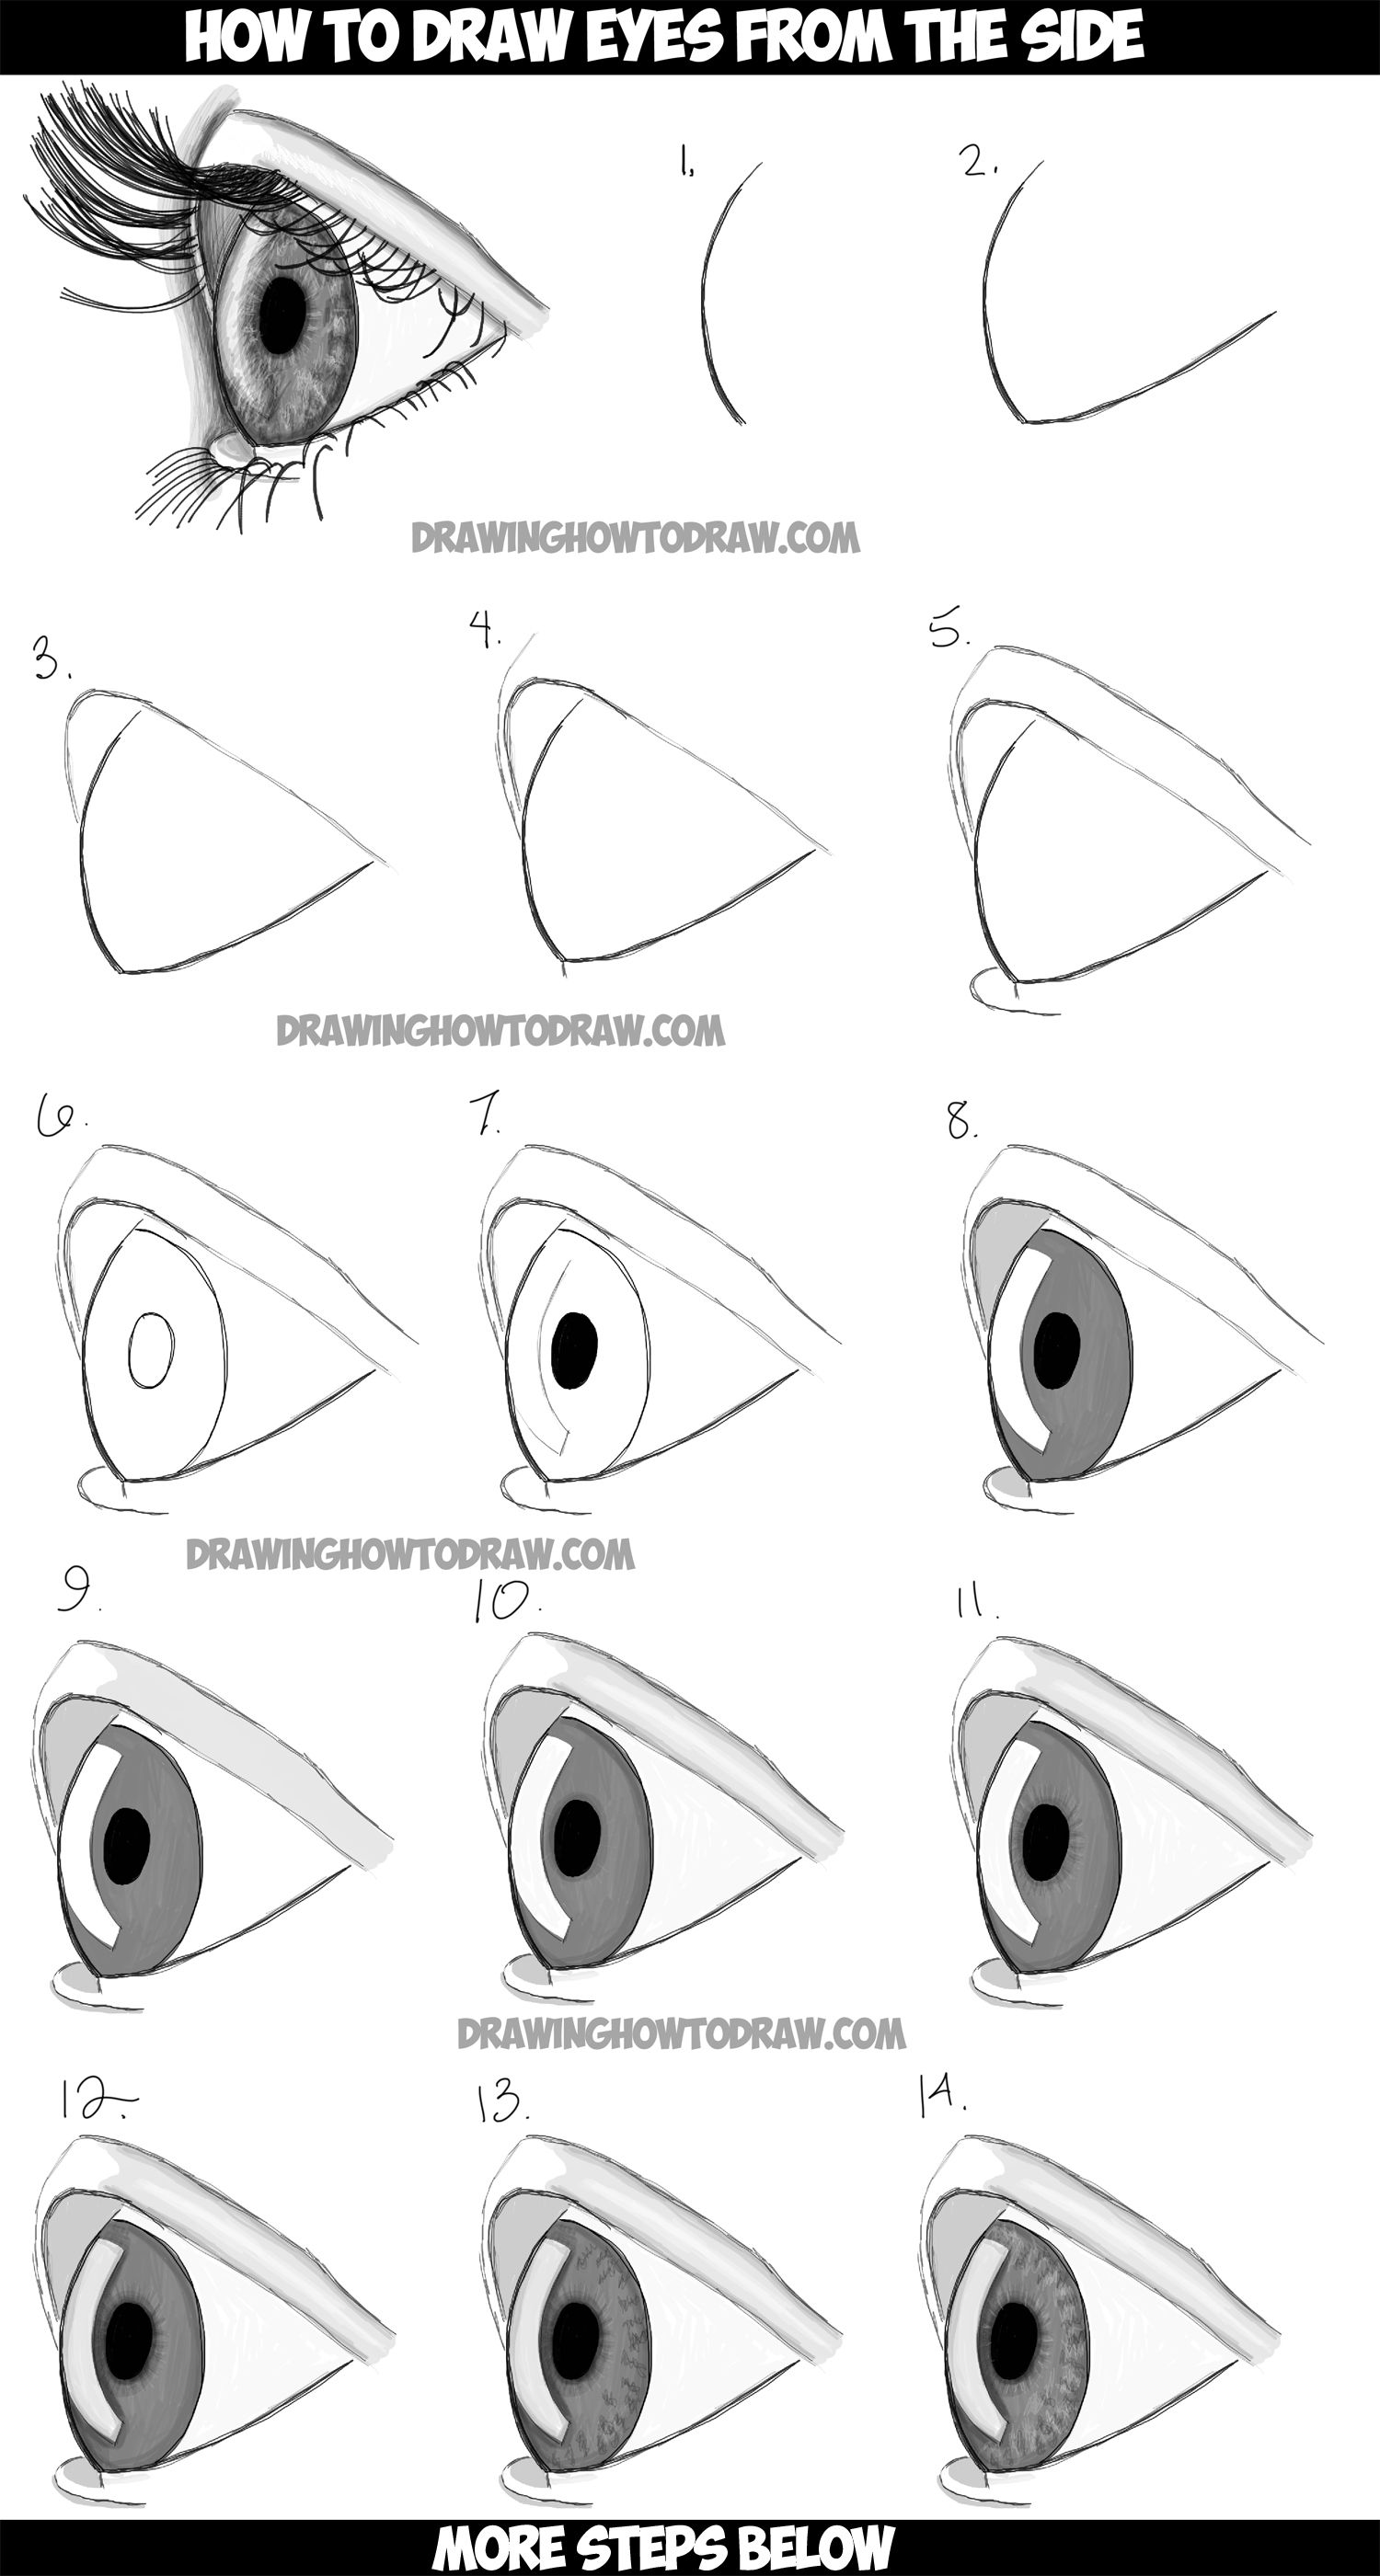 How to draw realistic eyes from the side profile view for Learn to draw cartoons step by step lessons